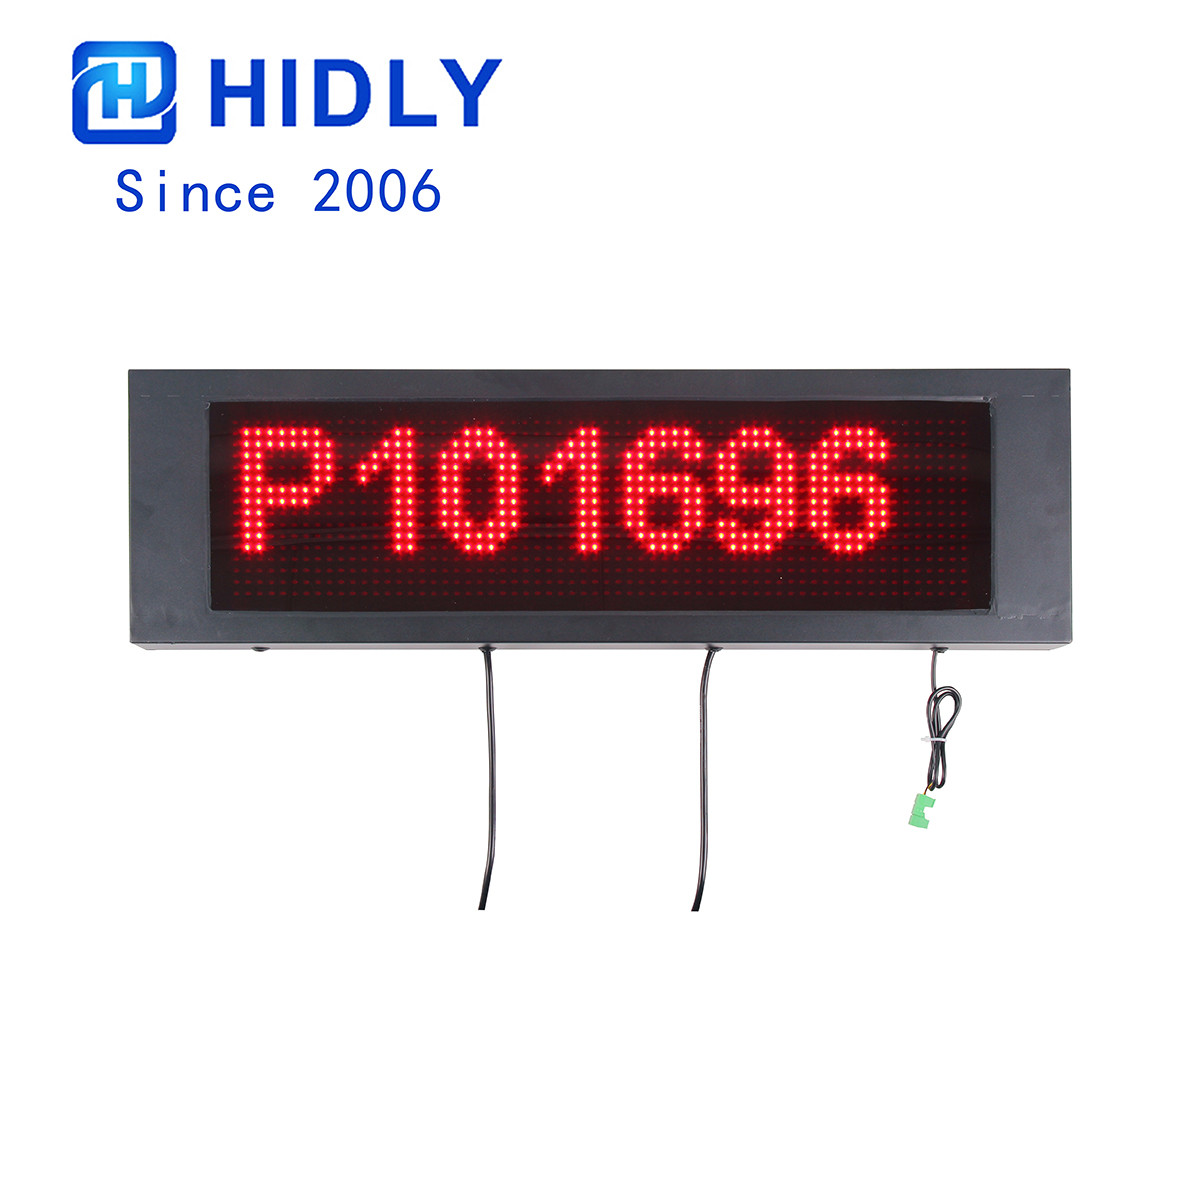 HIDLY P10 RED Parking Signs